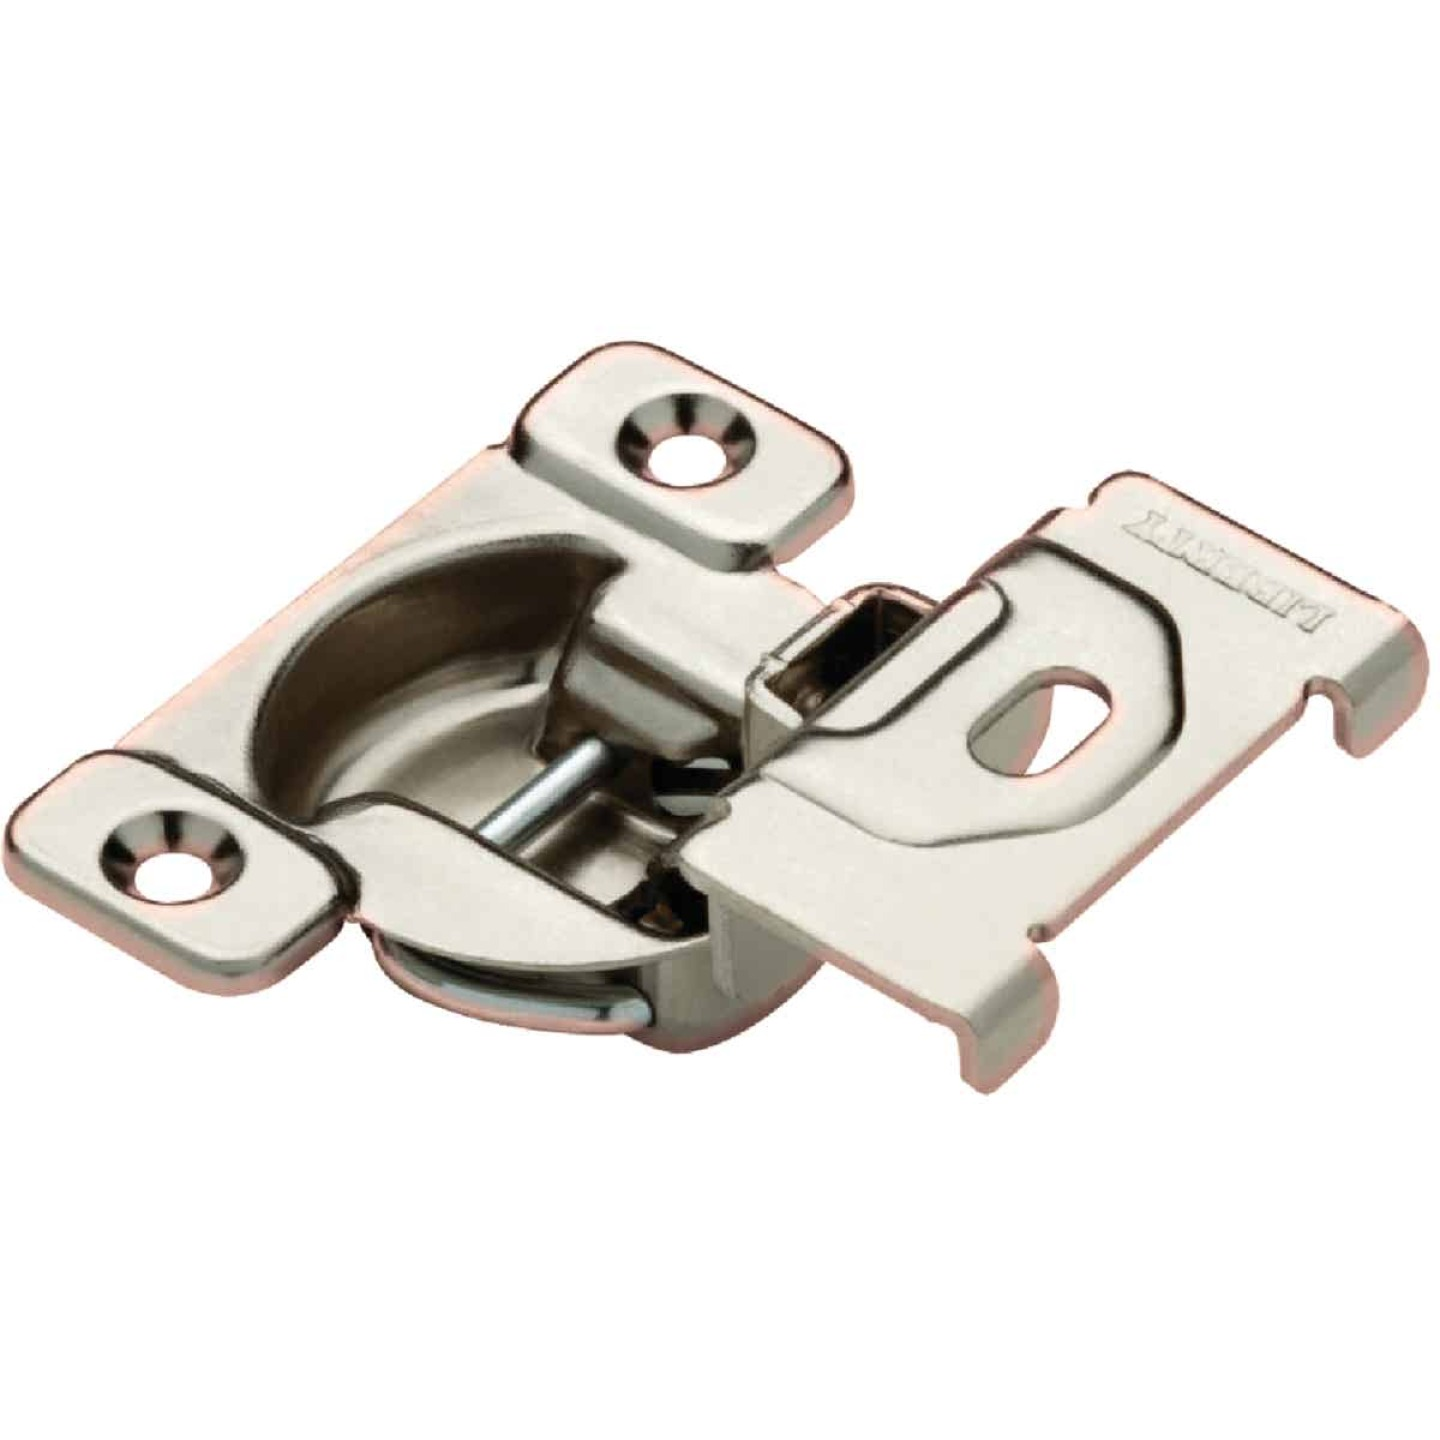 Liberty Overlay Face-Frame Nickel Plated 1-3/8 In. 108 Degree European Hinge, (2-Pack) Image 1